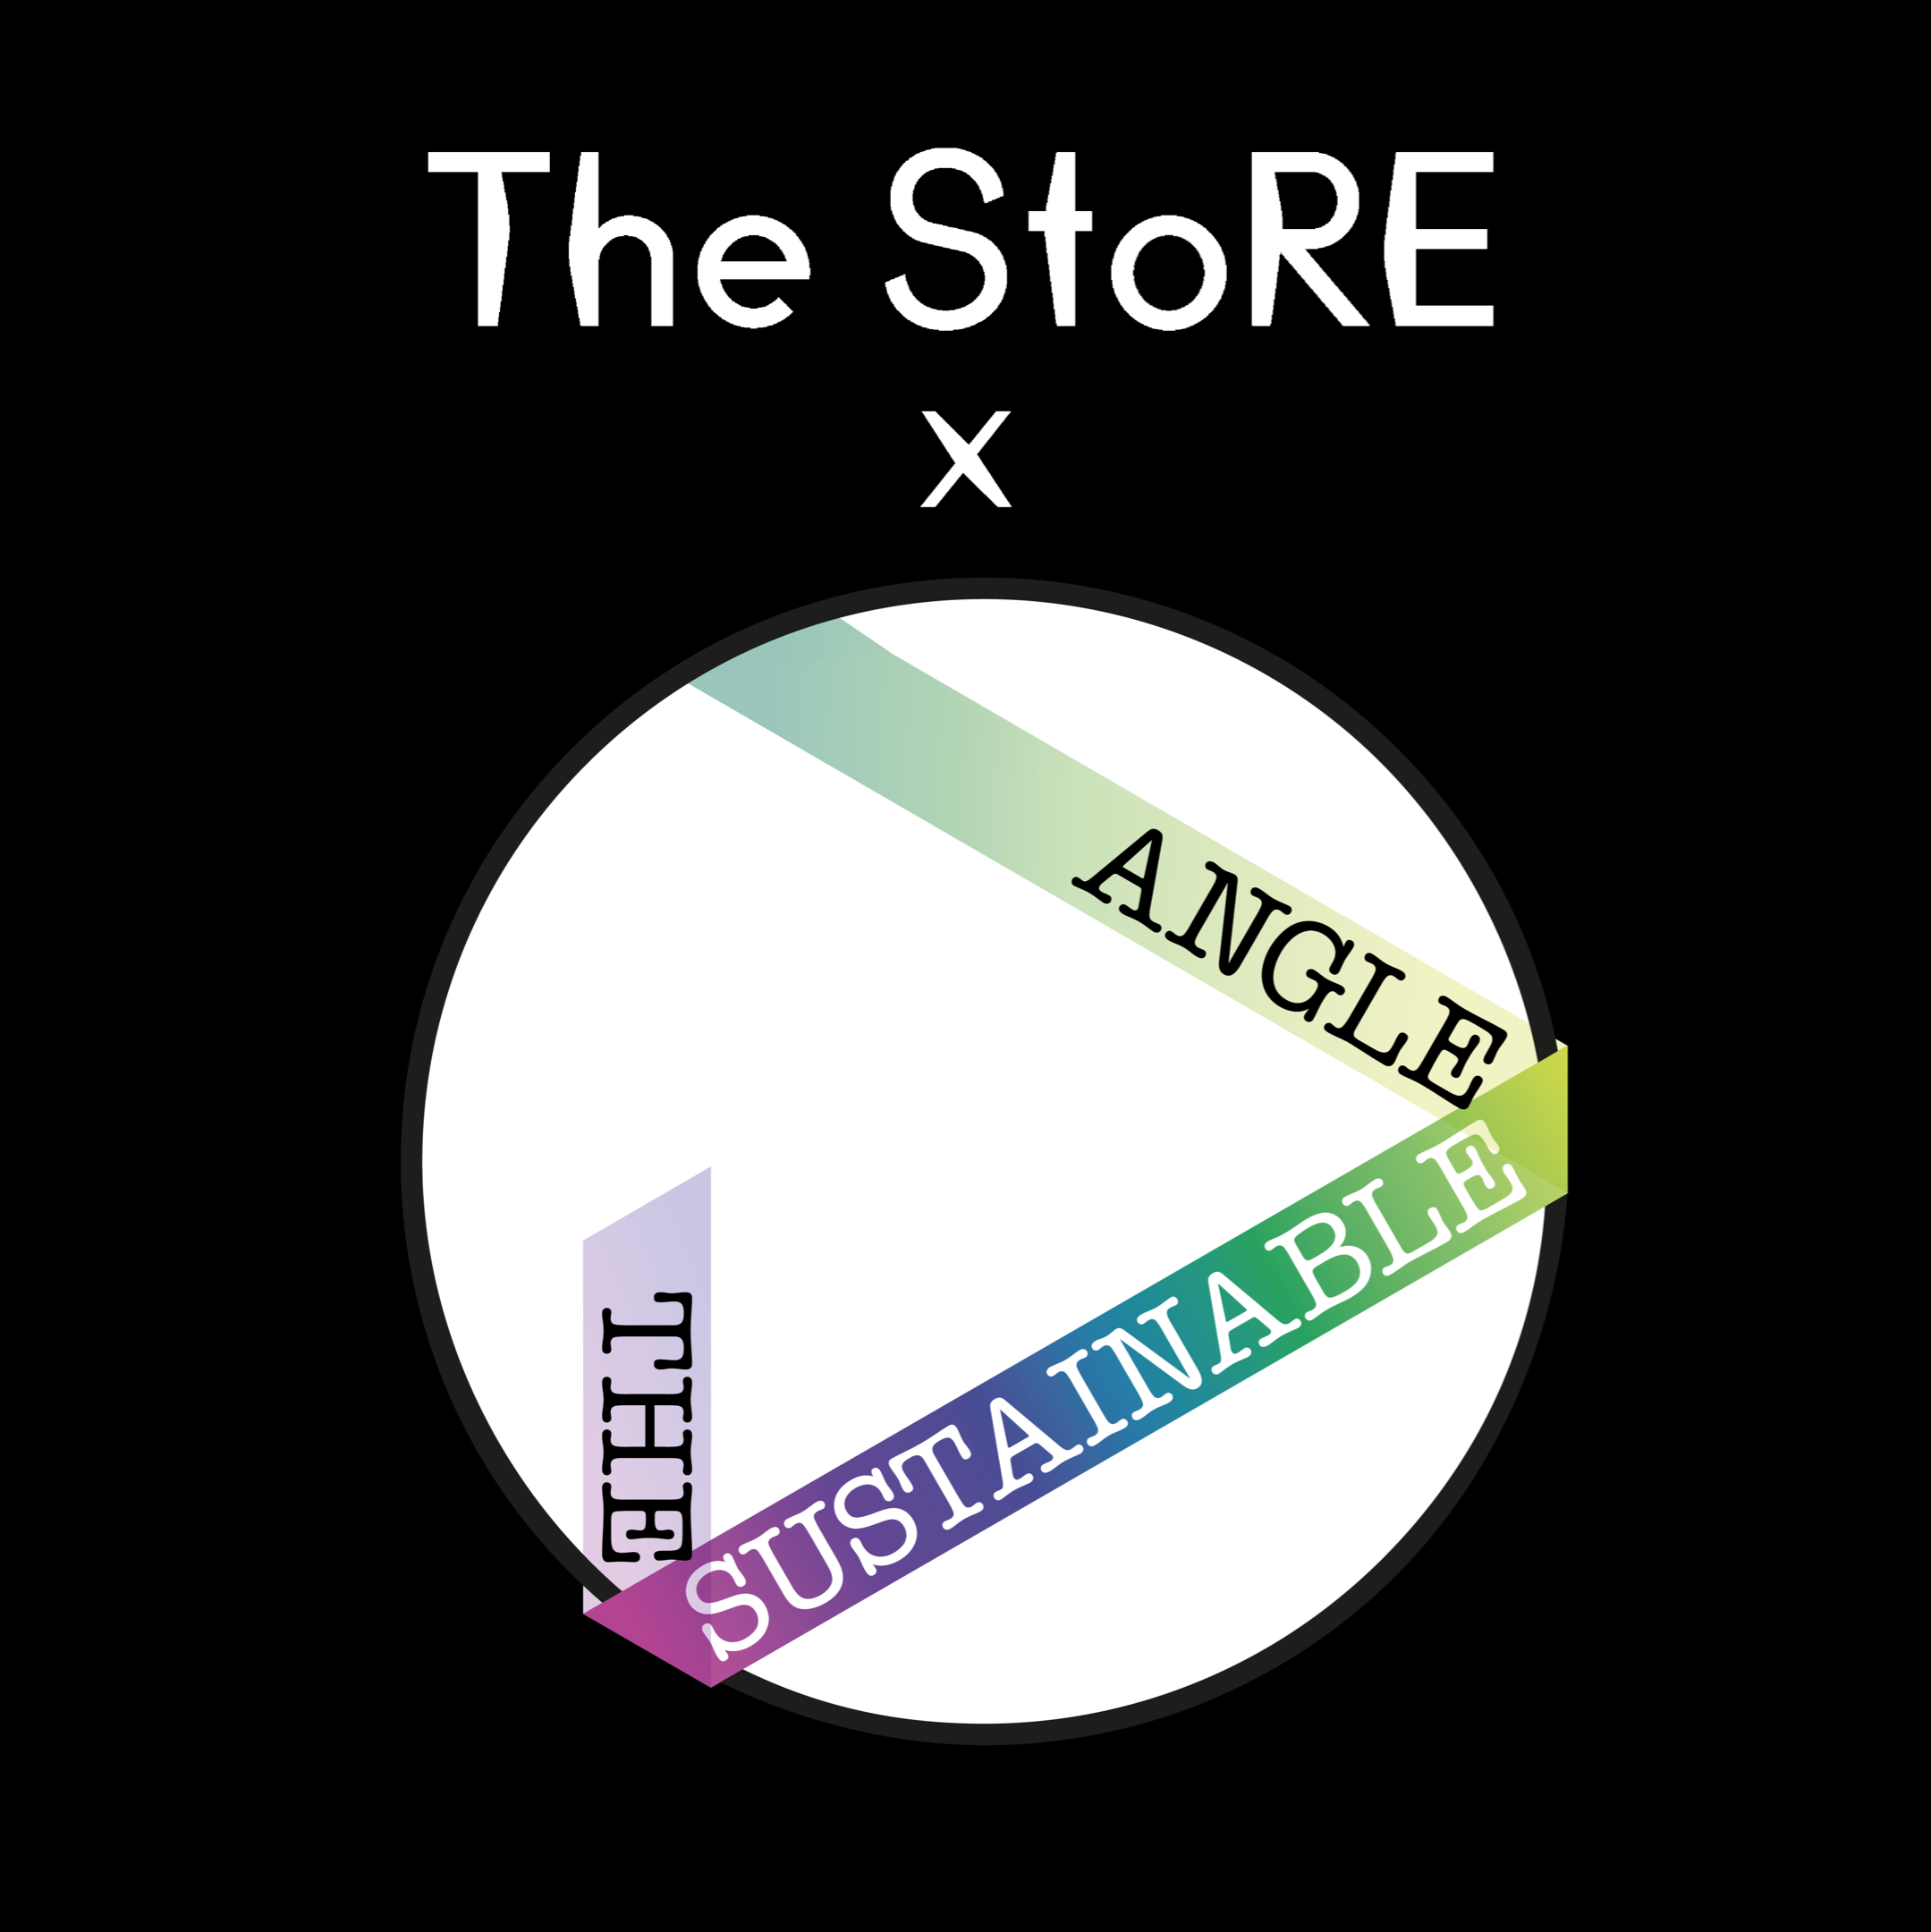 The Store x The Sustainable Angle